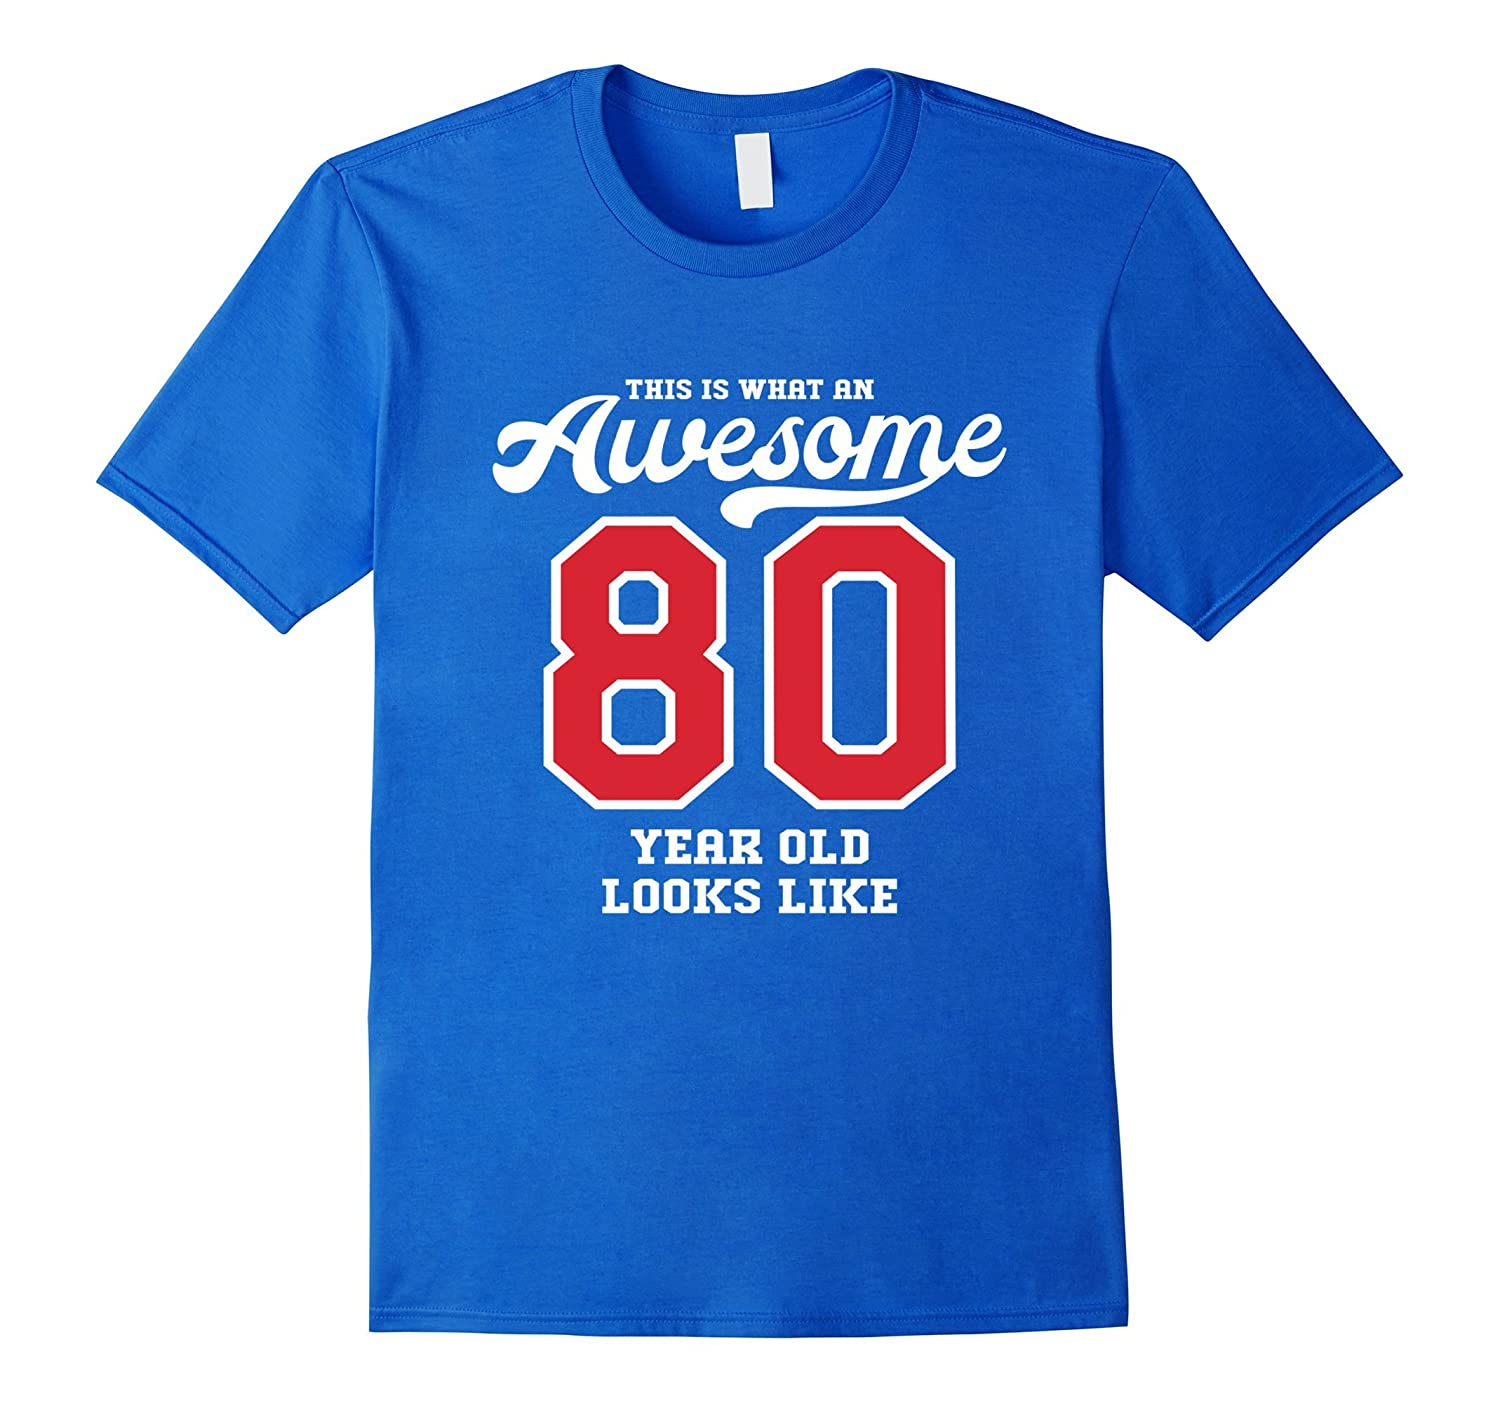 80th Birthday Gift T Shirt Awesome 80 Year Old PL